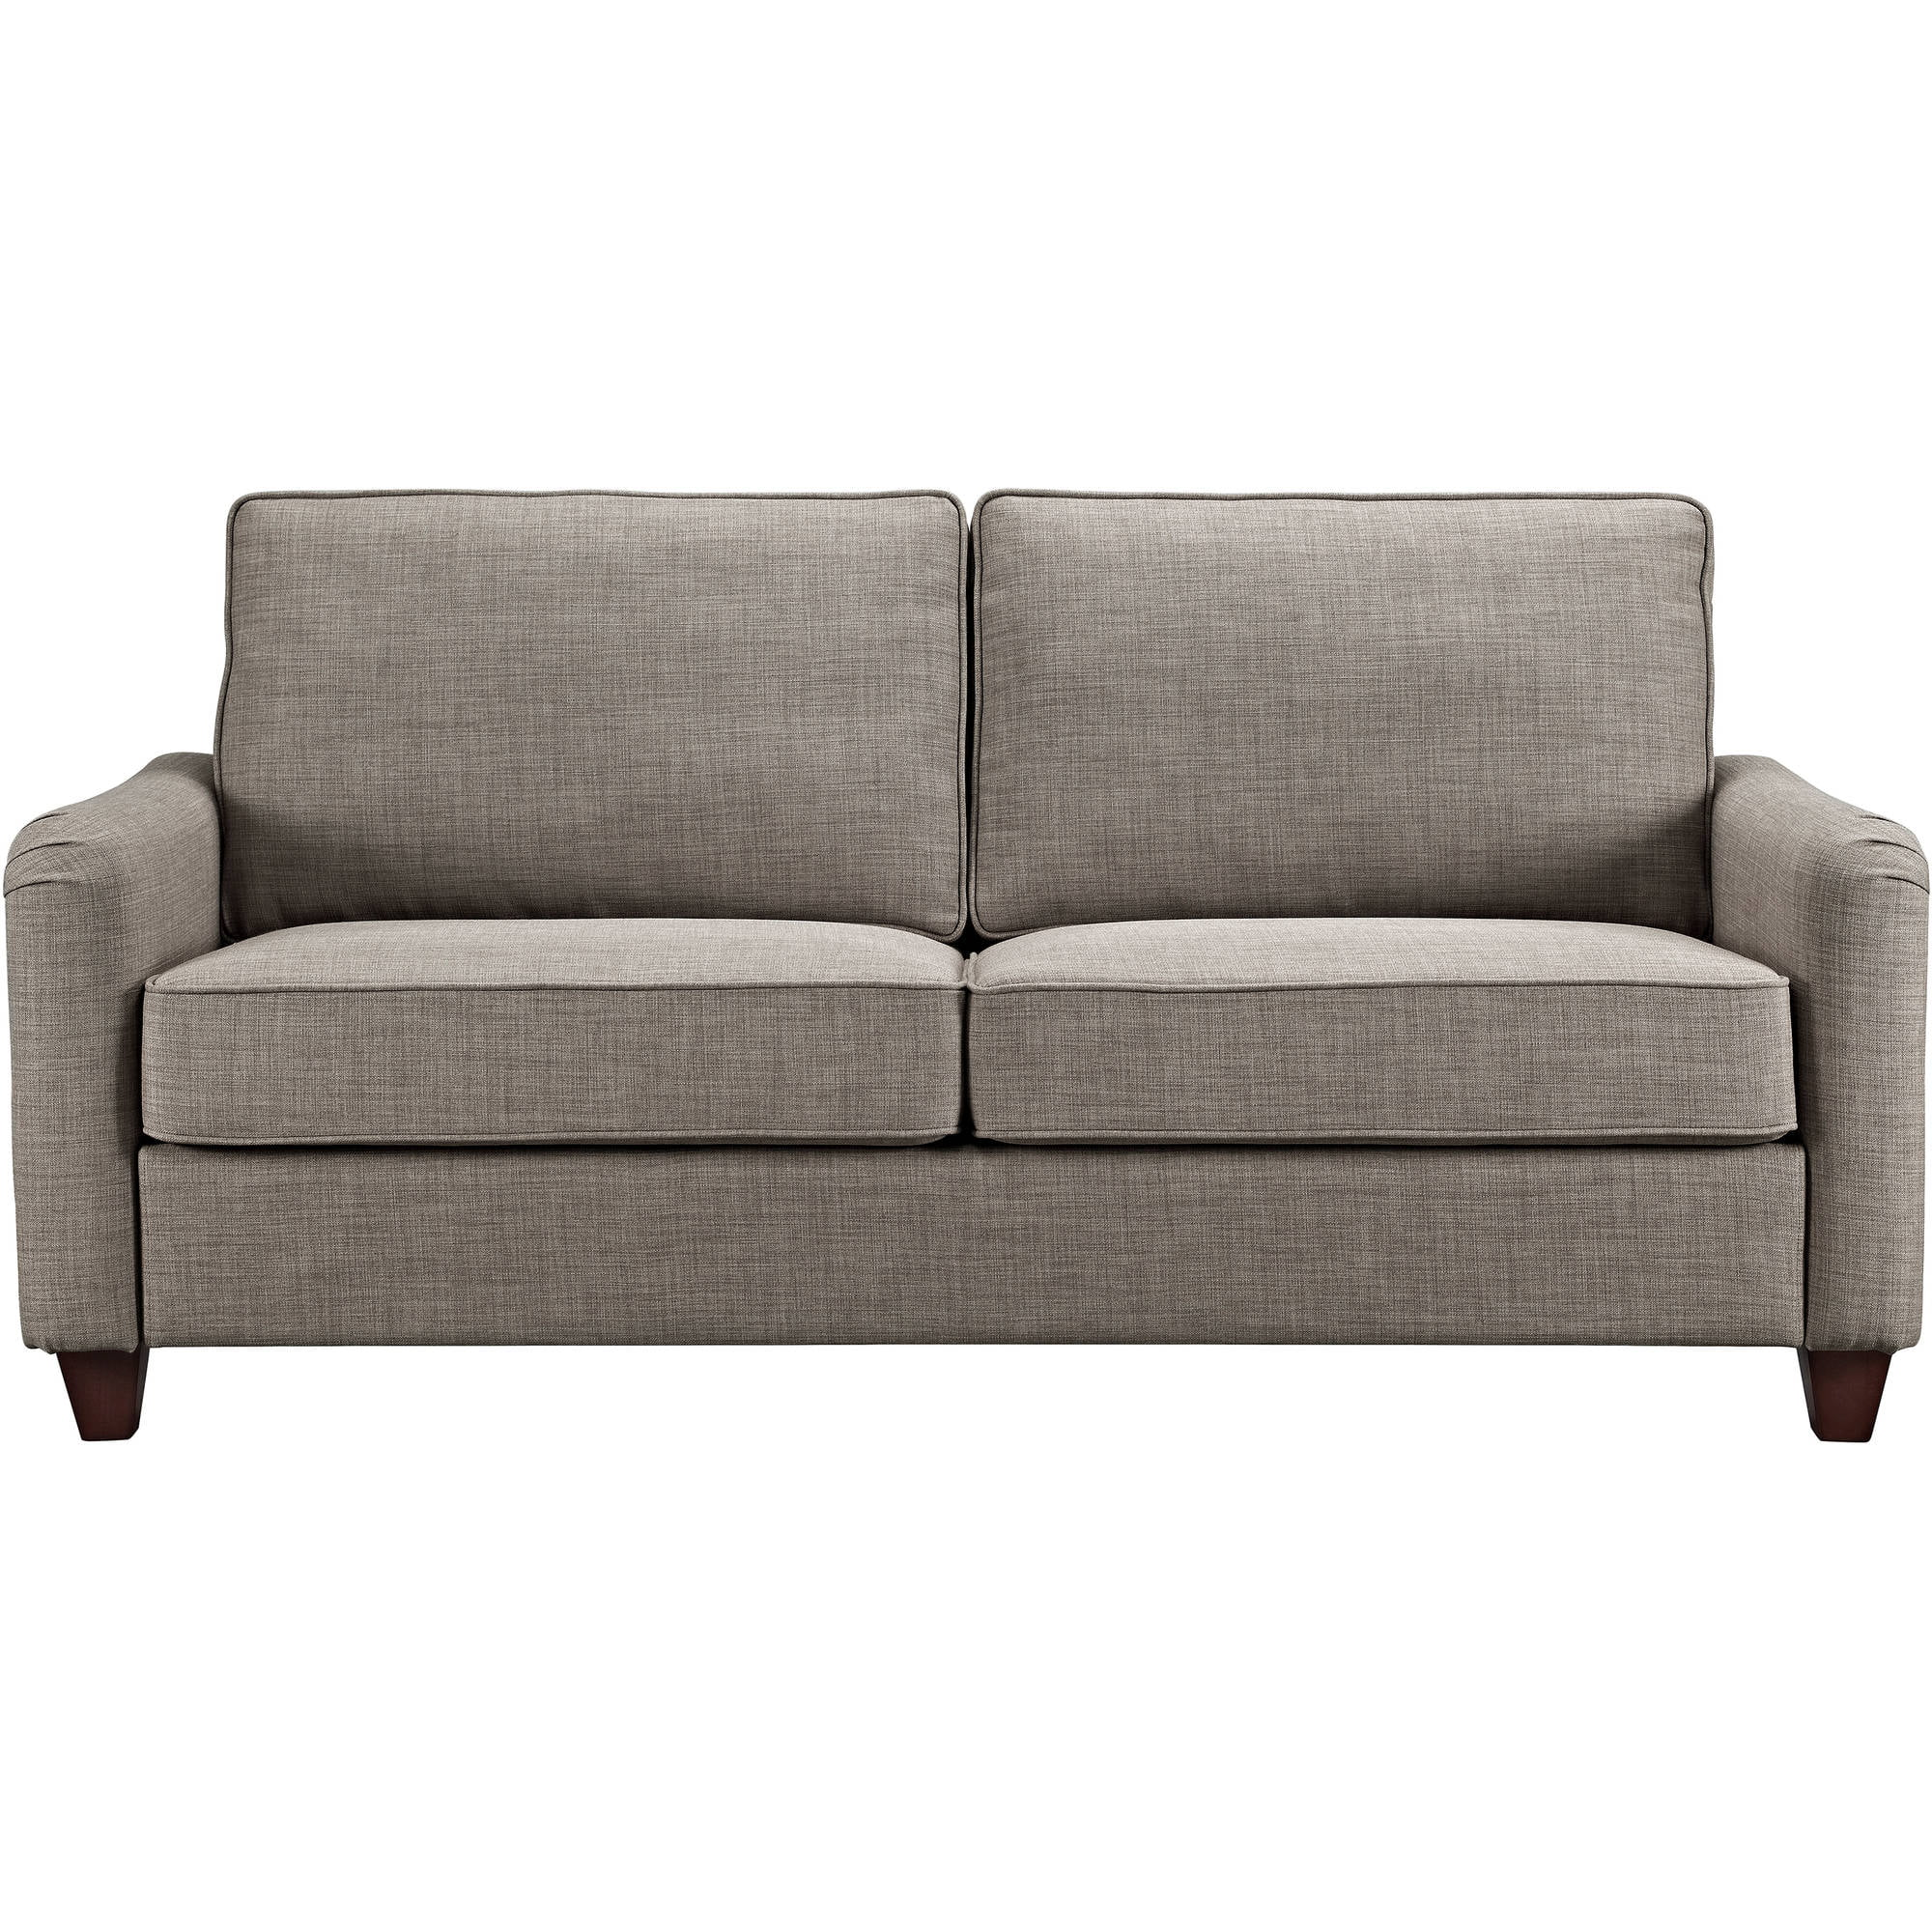 living room couches. Sofas  Couches Living Room Furniture